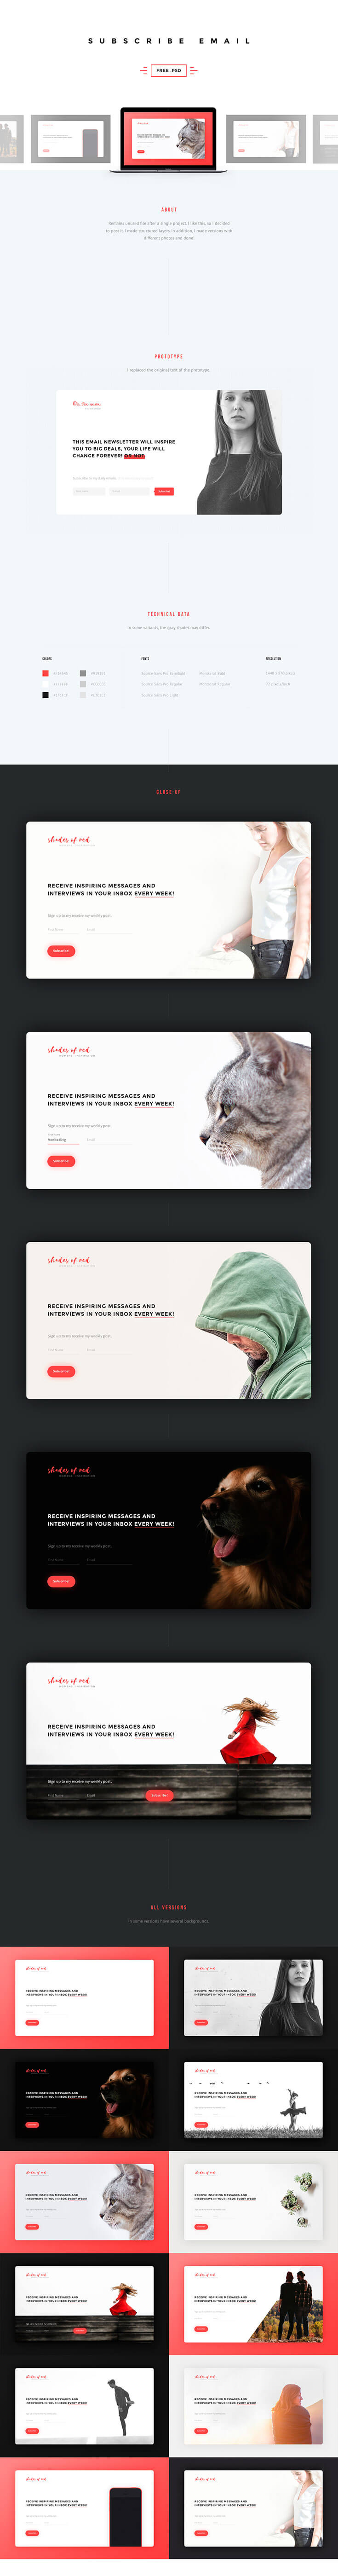 Free Subscribe #Email #Page #Templateis aclean and stylish template simple email page template designed and released by Misha Kazancev.It comes in PSD format file.It comes with a nice overall design and color scheme with fully editable to fit to your personal needs.